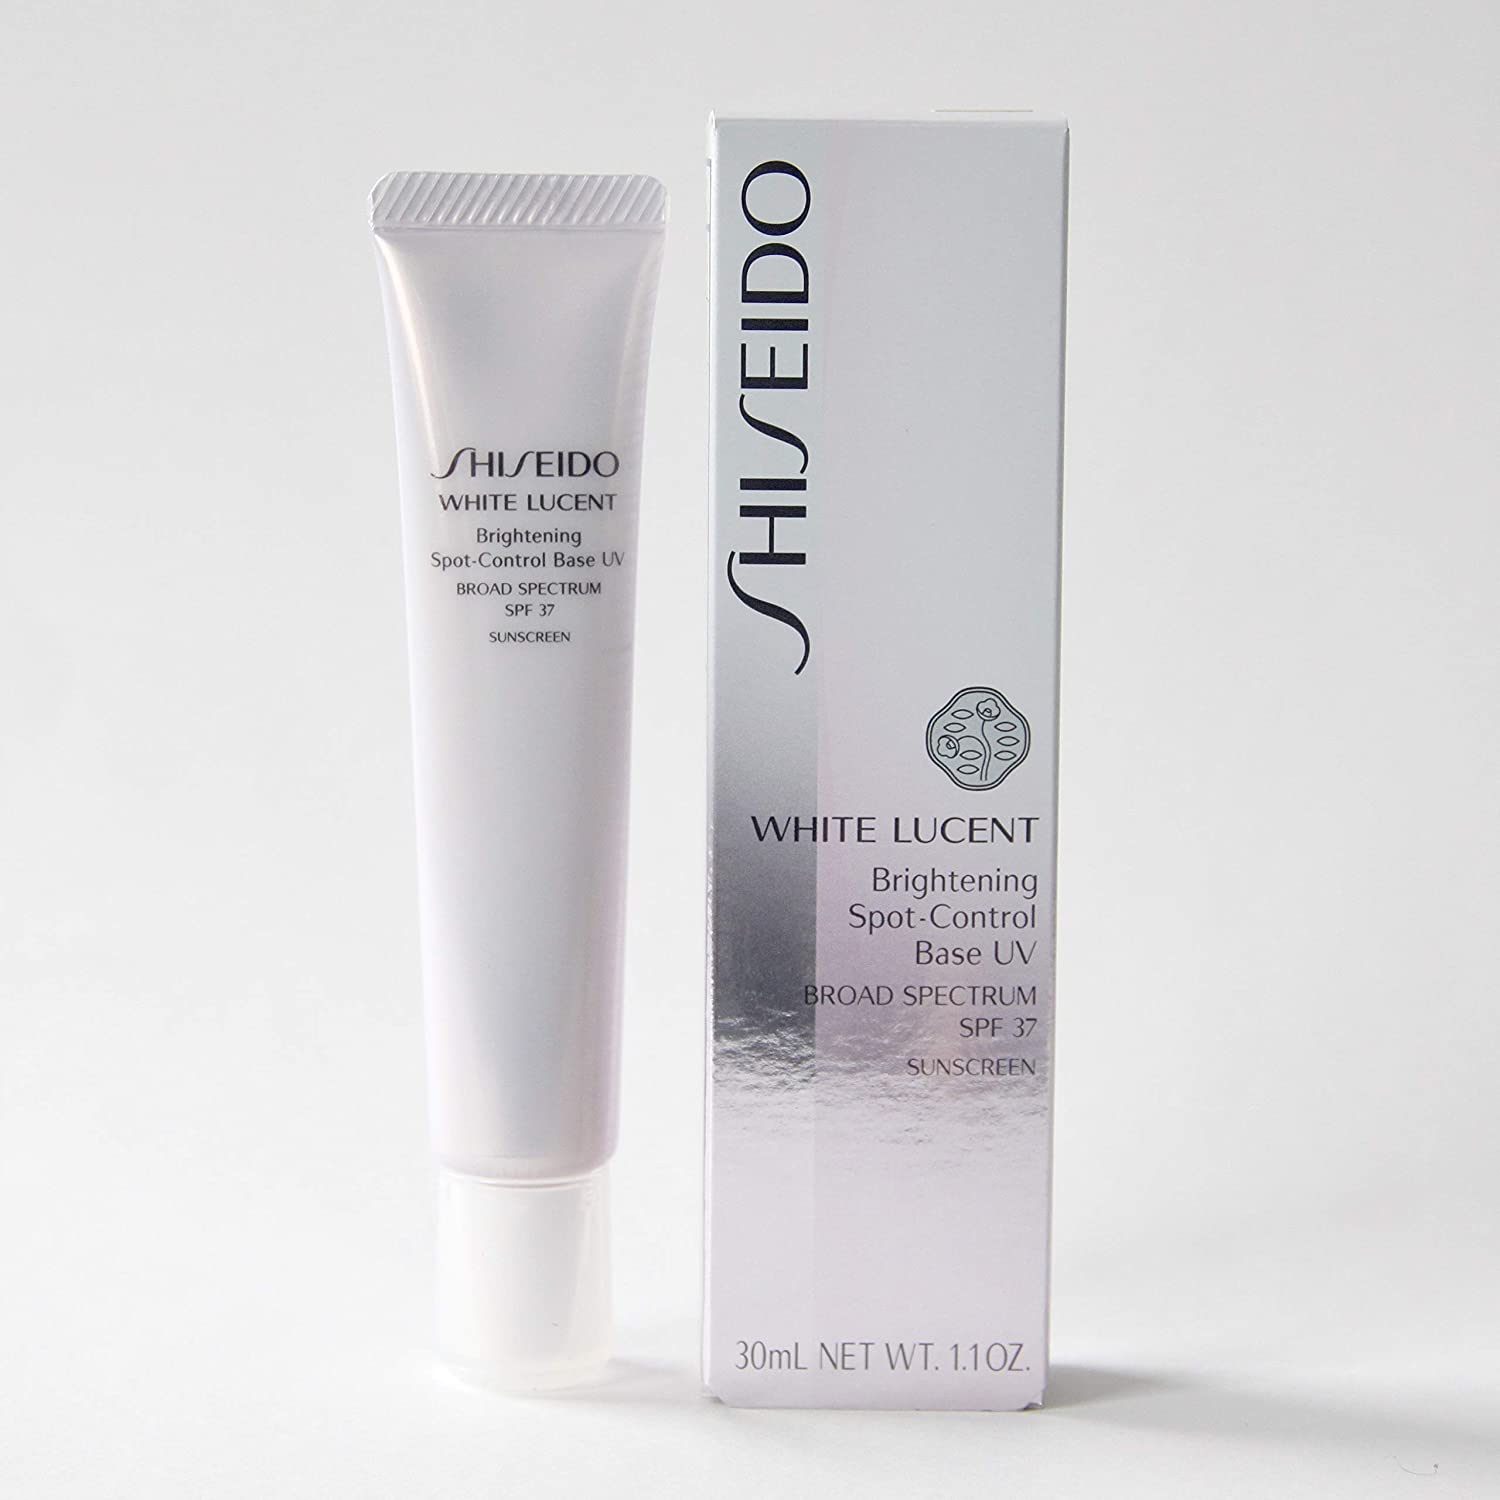 Shiseido White Lucent Brightening Spot Control Base UV Broad Spectrum SPF 37 Sunscreen Color - IVORY